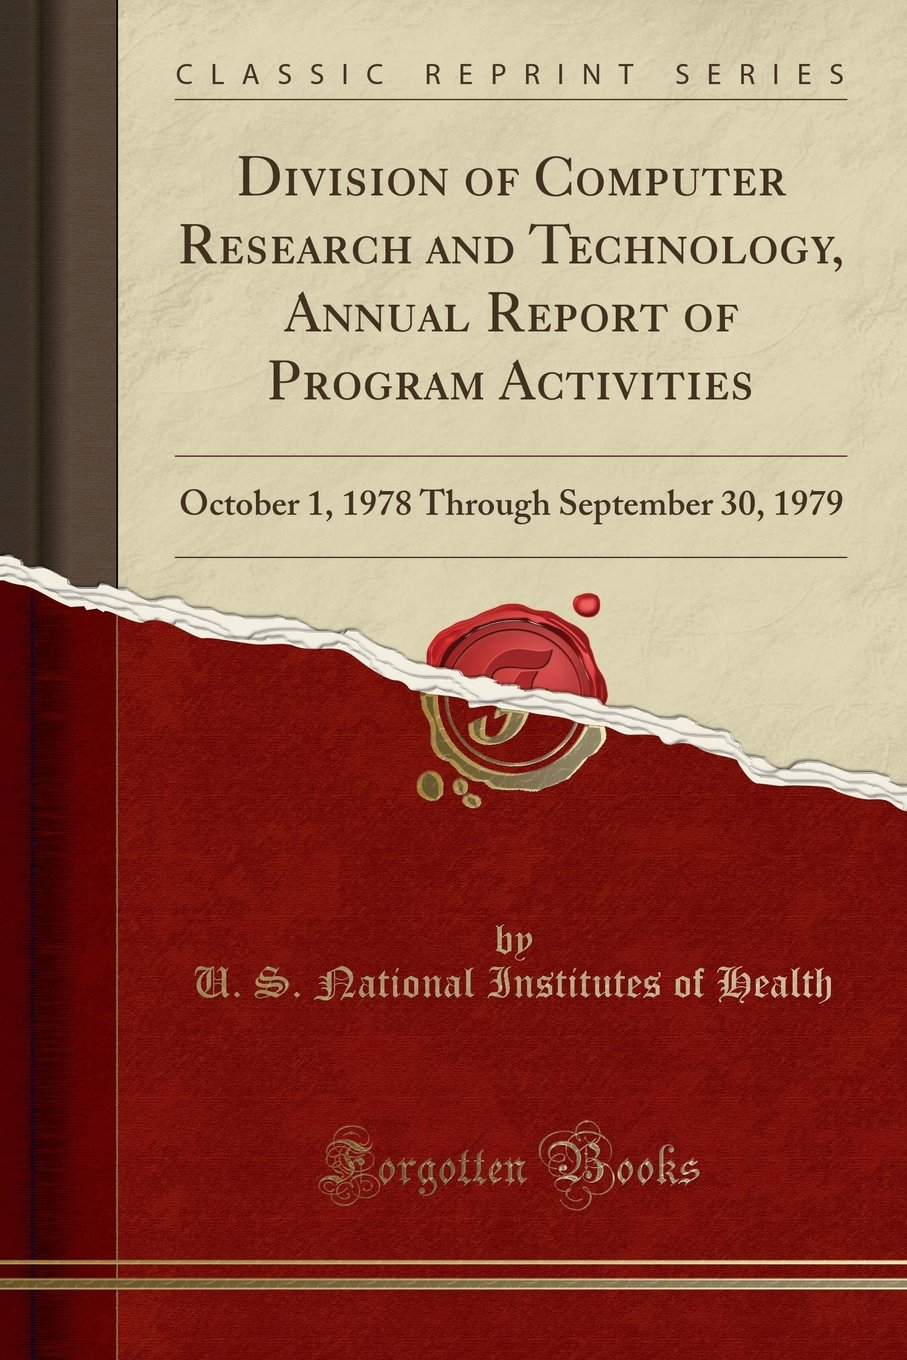 Download Division of Computer Research and Technology, Annual Report of Program Activities: October 1, 1978 Through September 30, 1979 (Classic Reprint) ebook